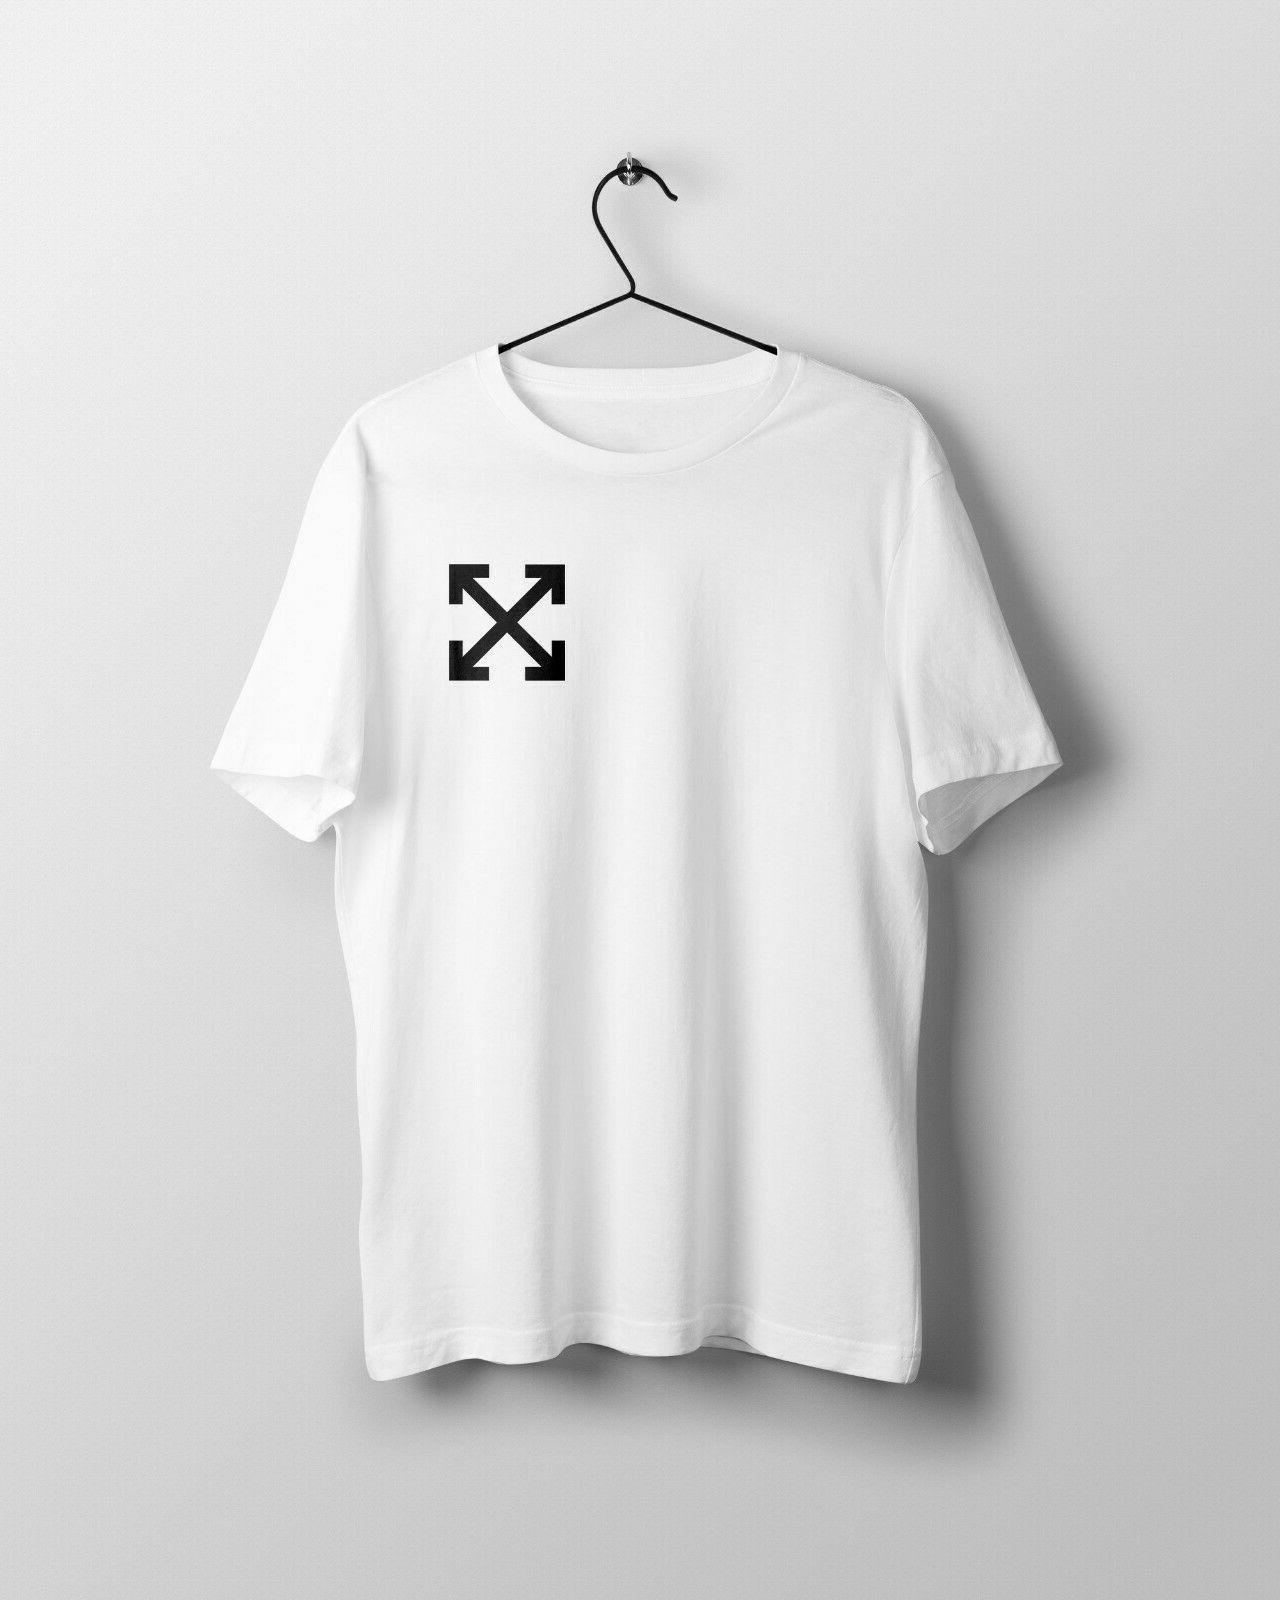 off white tshirt for men and women